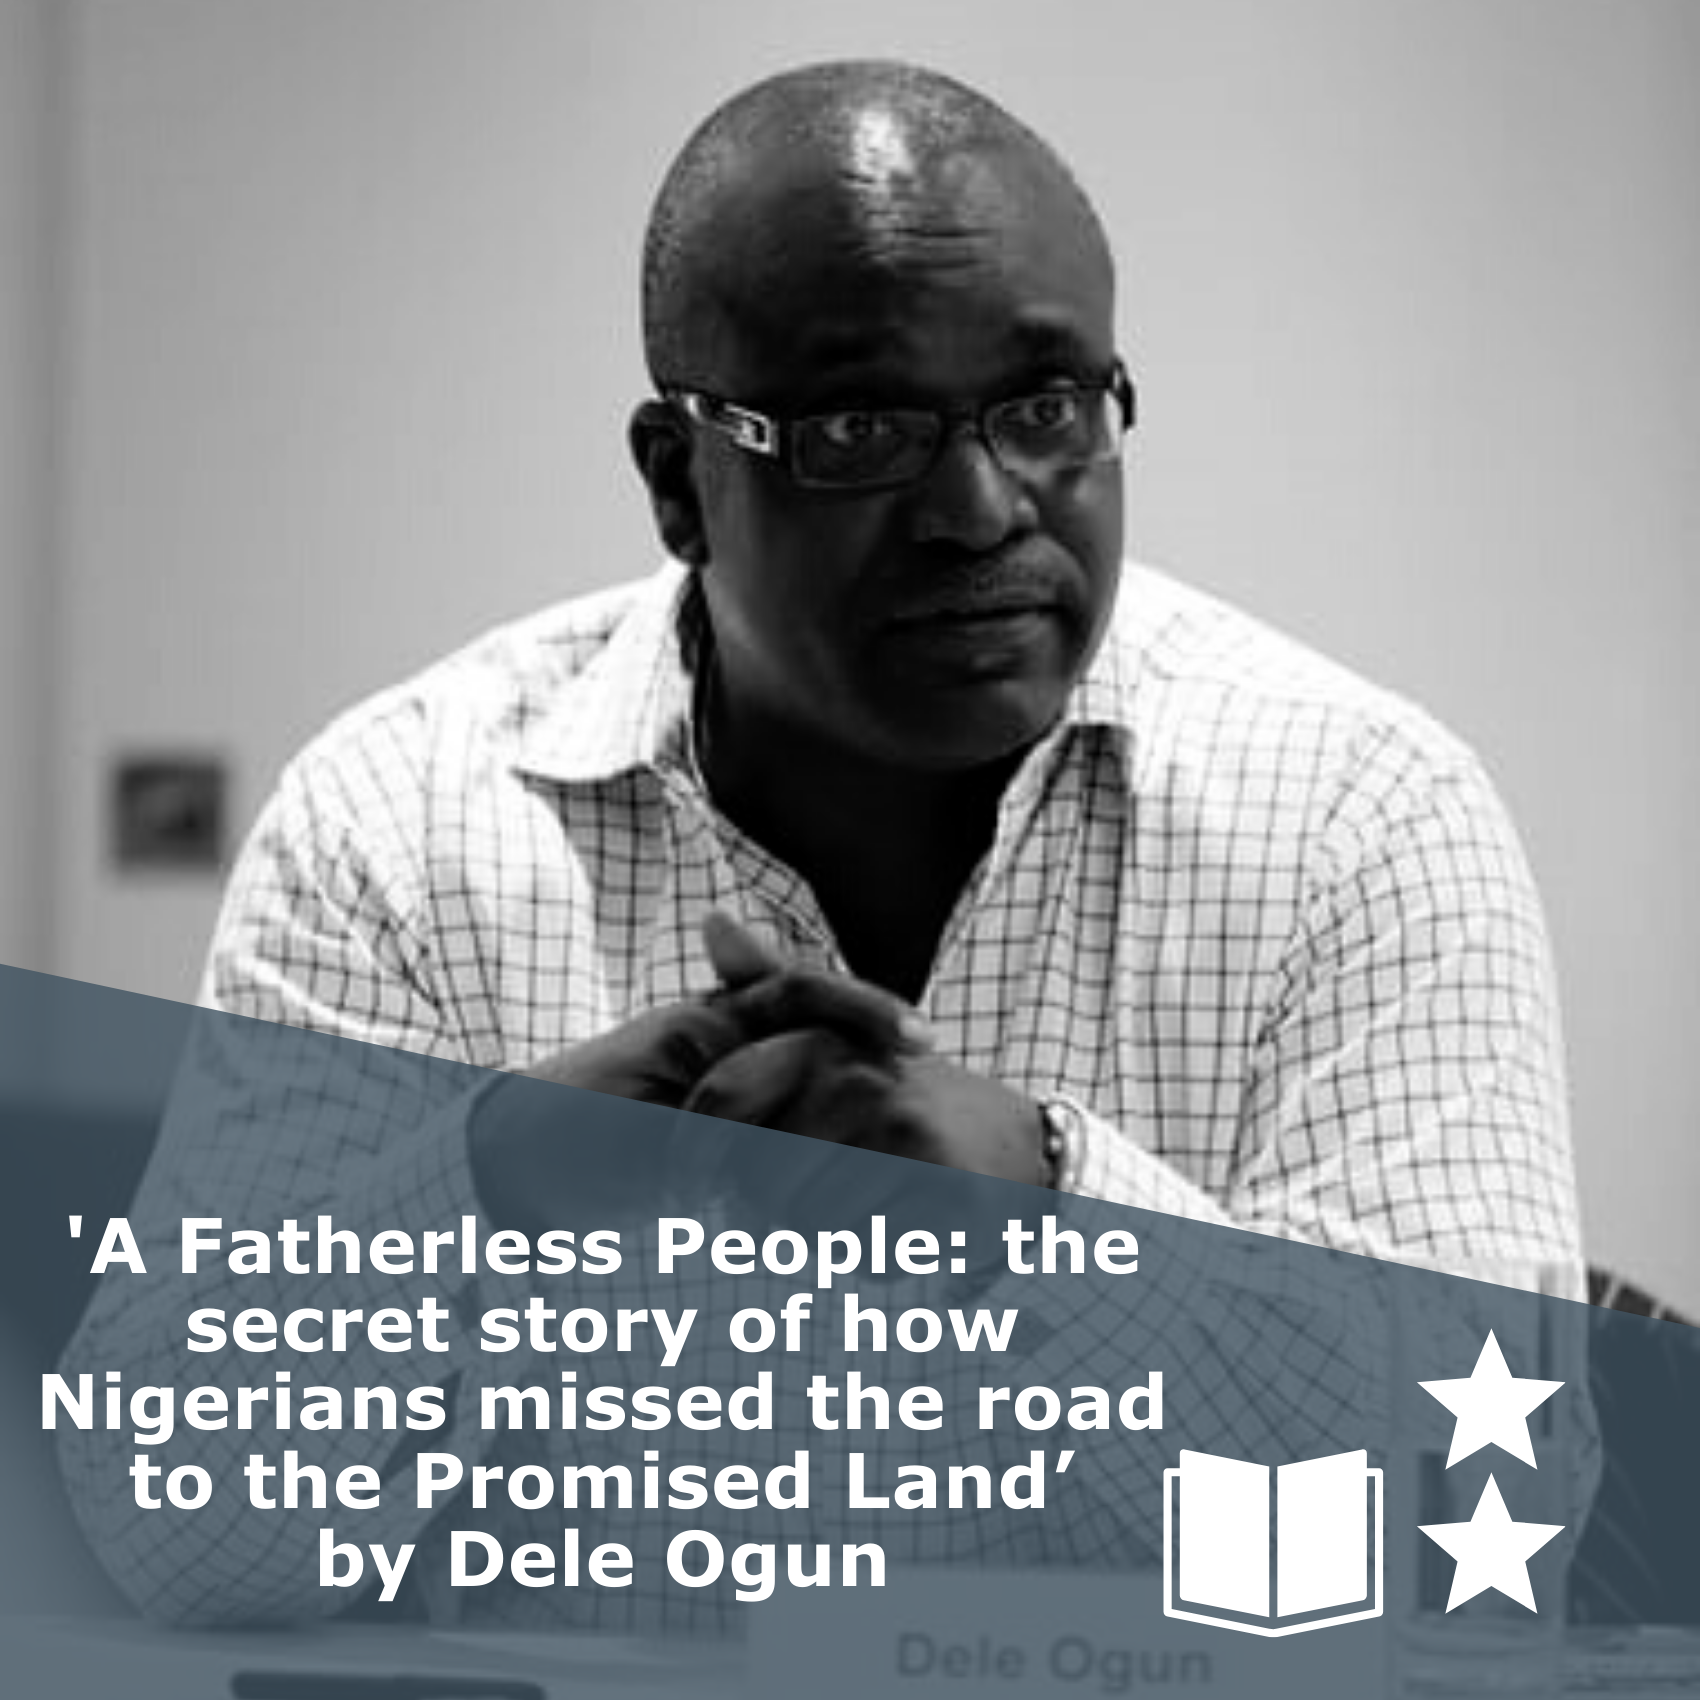 Picture of a the author in black and white. Title 'A Fatherless People: the secret story of how Nigerians missed the road to the Promised Land' by Dele Ogun. It is a book rated 2 stars